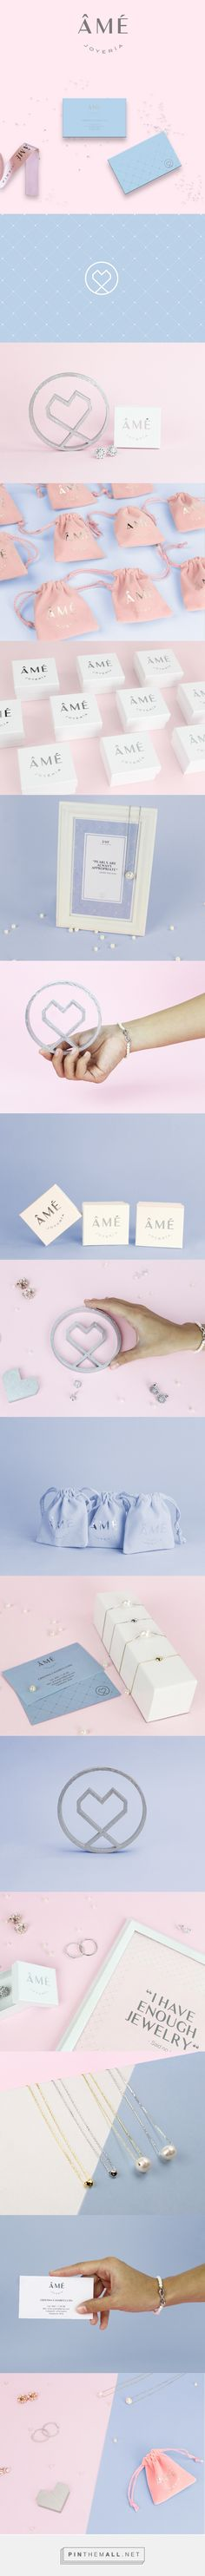 AME Joyeria Jewelry Branding and Packaging by Puro Diseno | Fivestar Branding – Design and Branding Agency & Inspiration Gallery | #BrandingInspiration